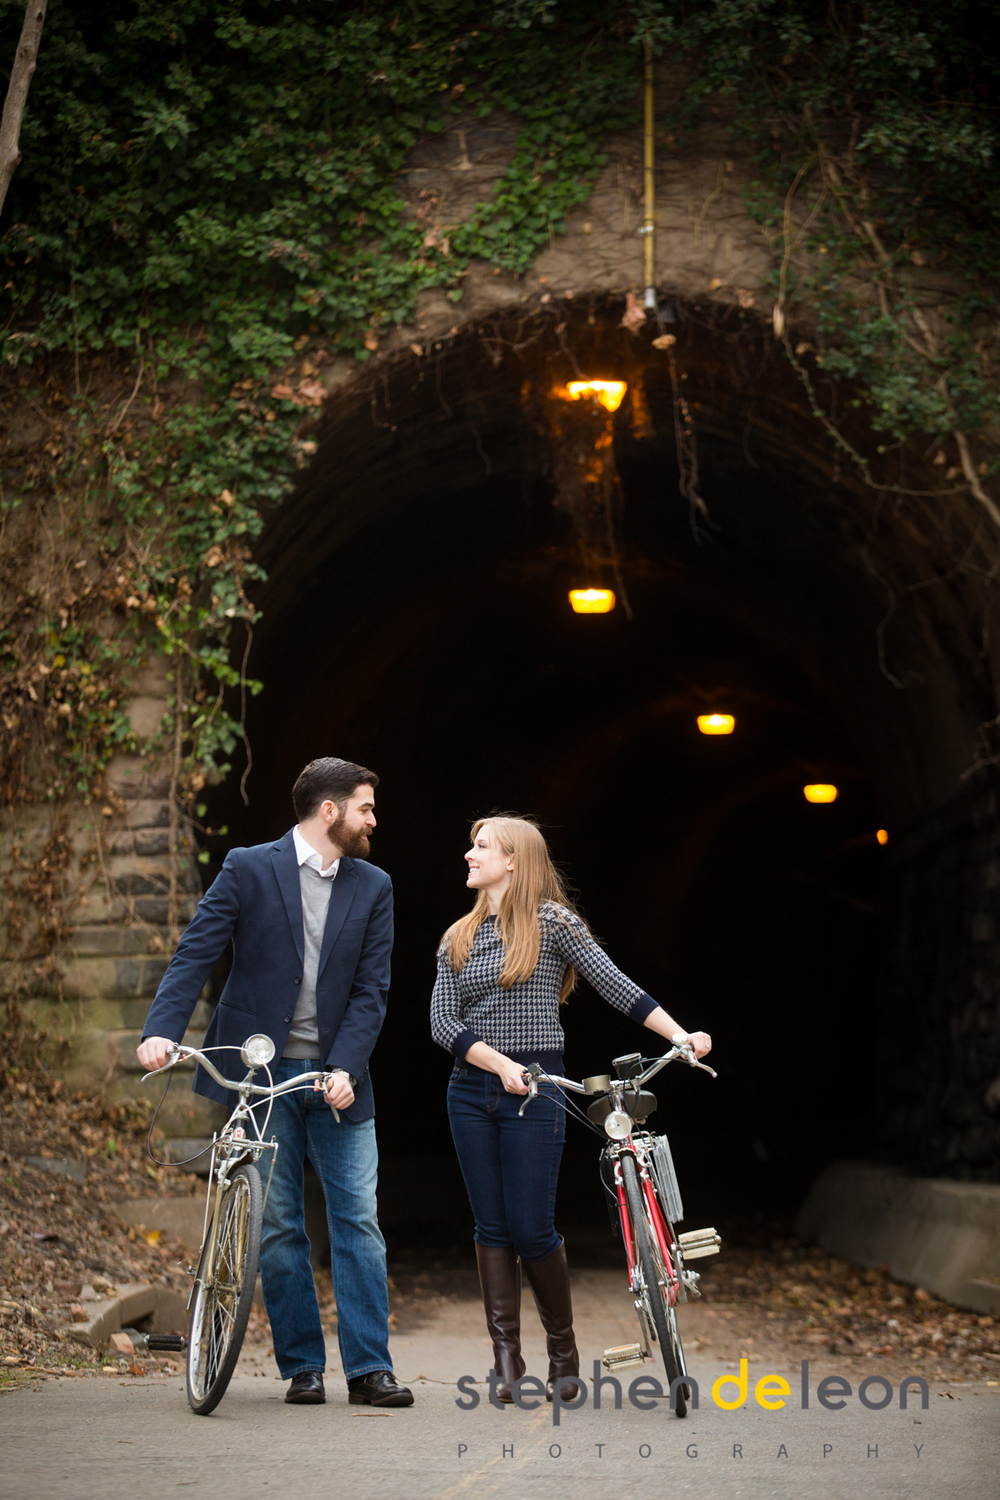 Old-town-bike-engagement-session0013.jpg